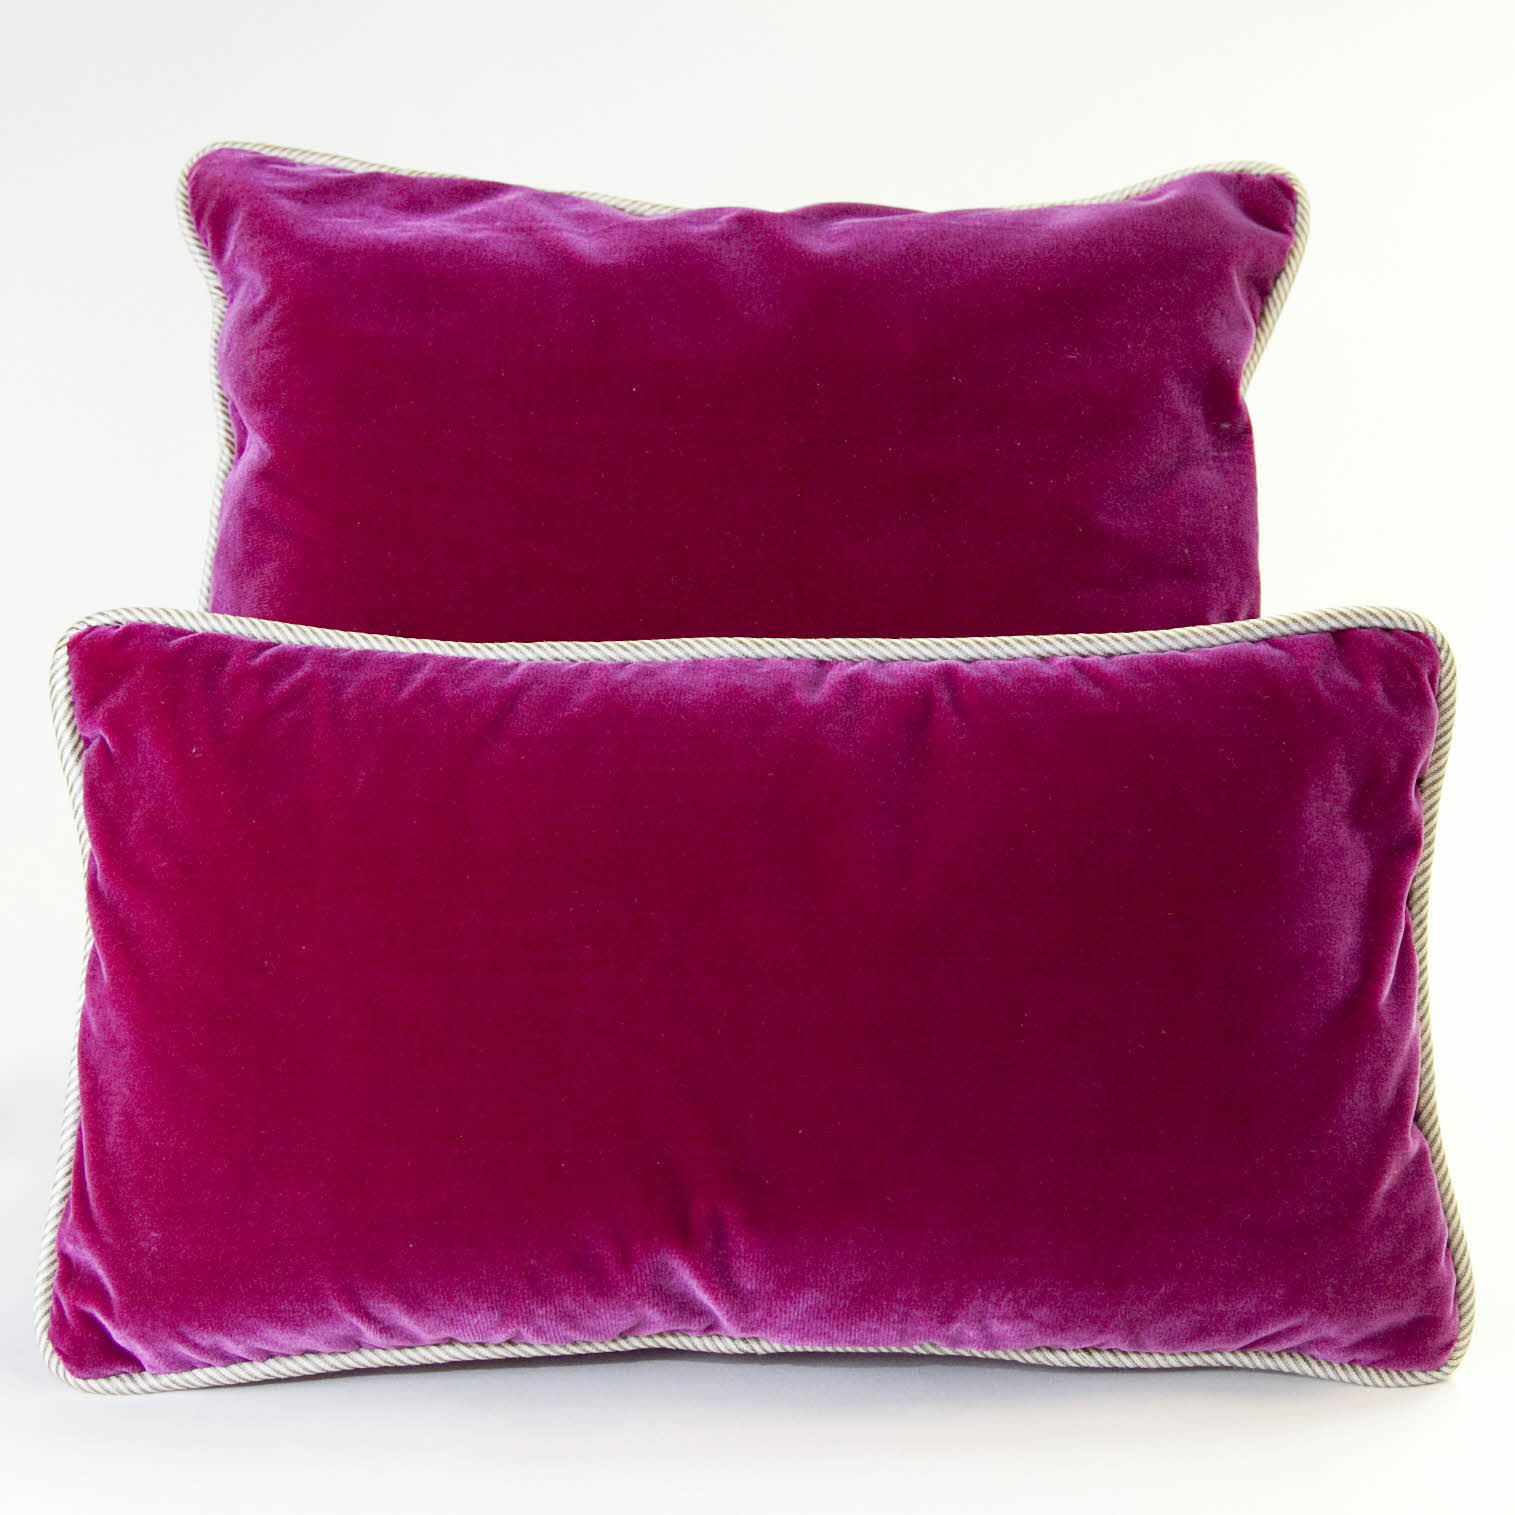 Fuschia Throw Pillows : Silk Velvet Pillow, Fuschia w/ Navy/Sand from wolfhomeny.com My